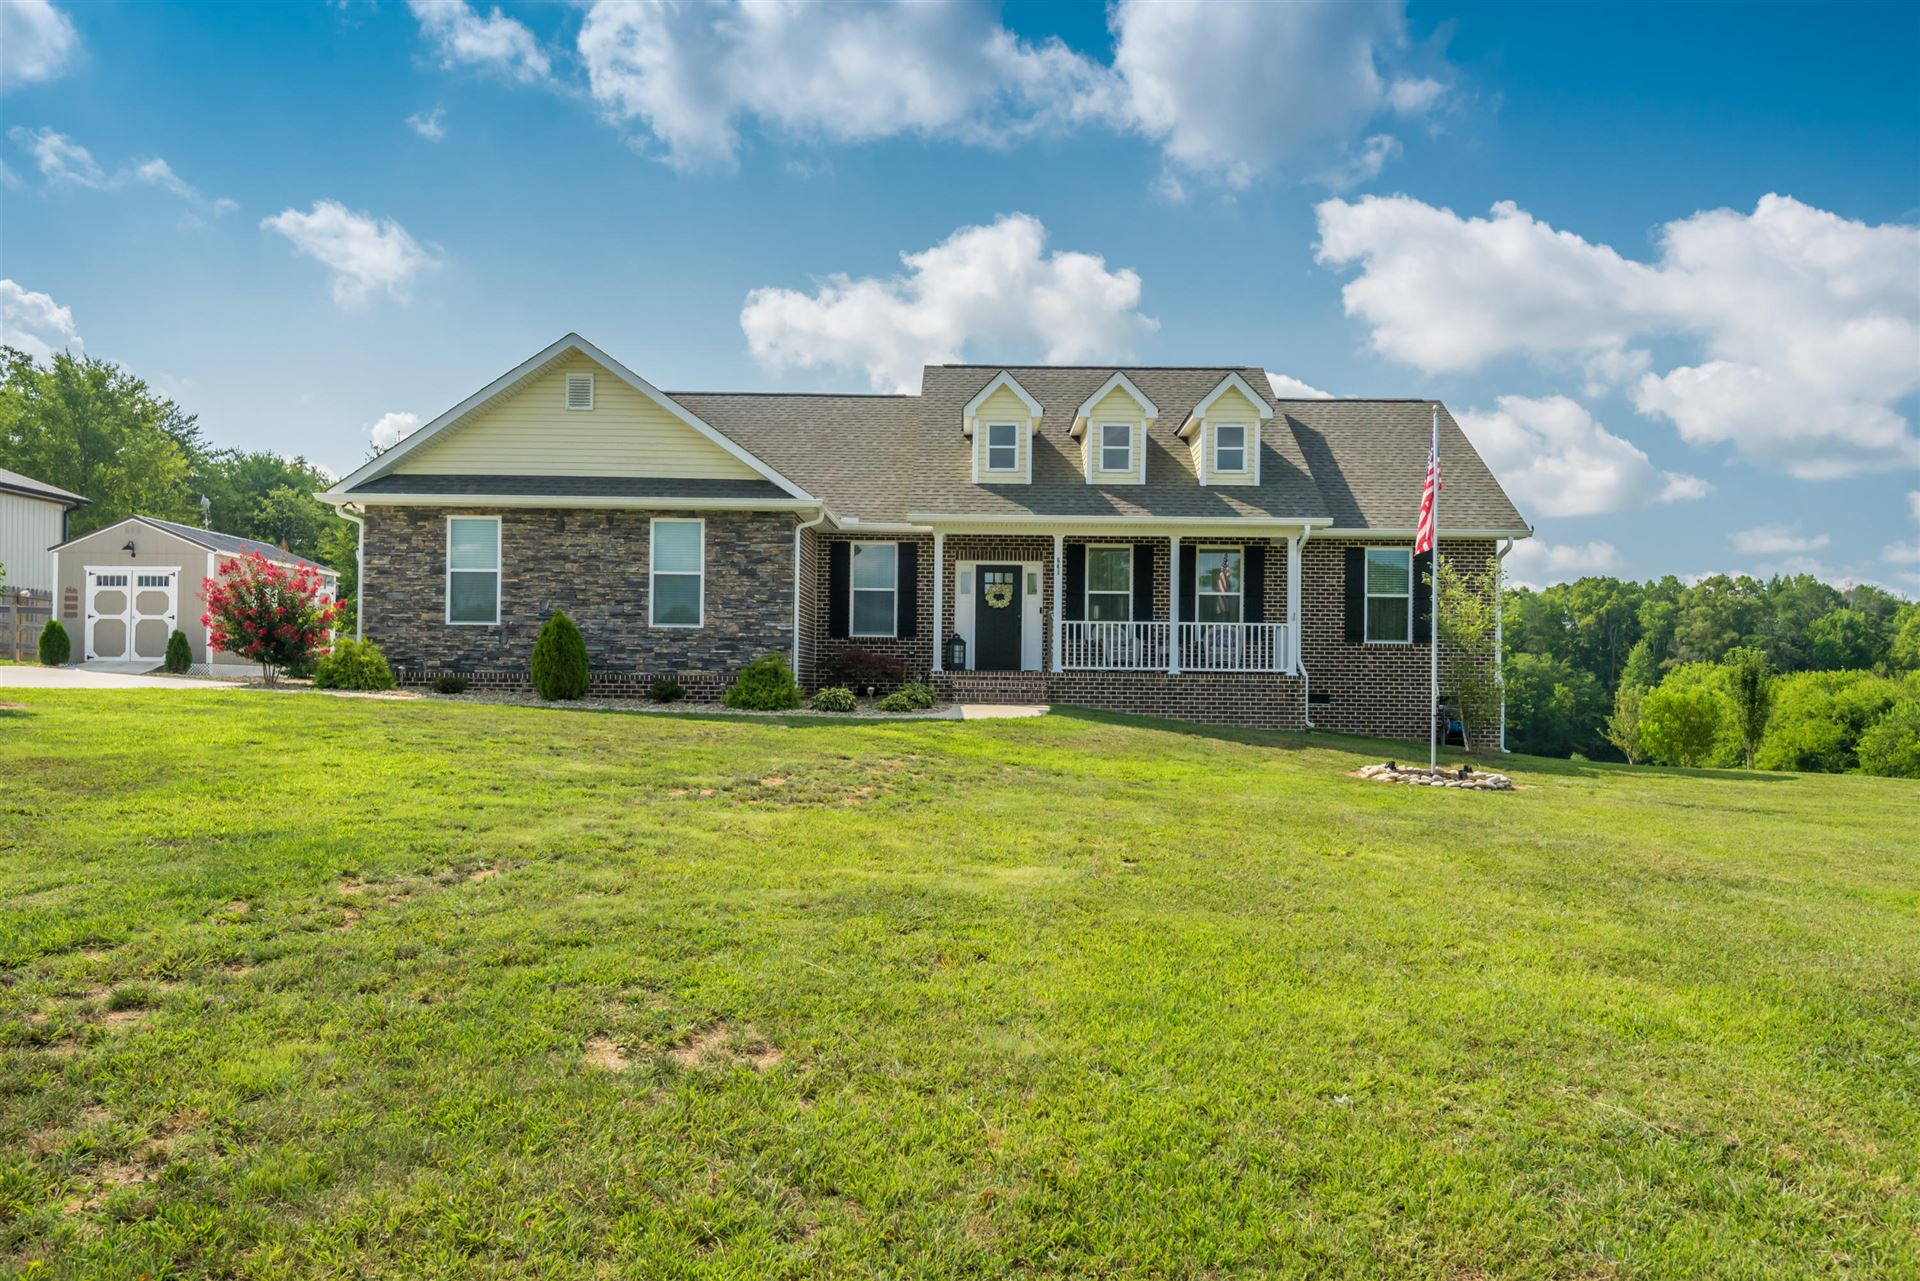 Photo of 641 Clover Hill Rd, Maryville, TN 37801 (MLS # 1162023)